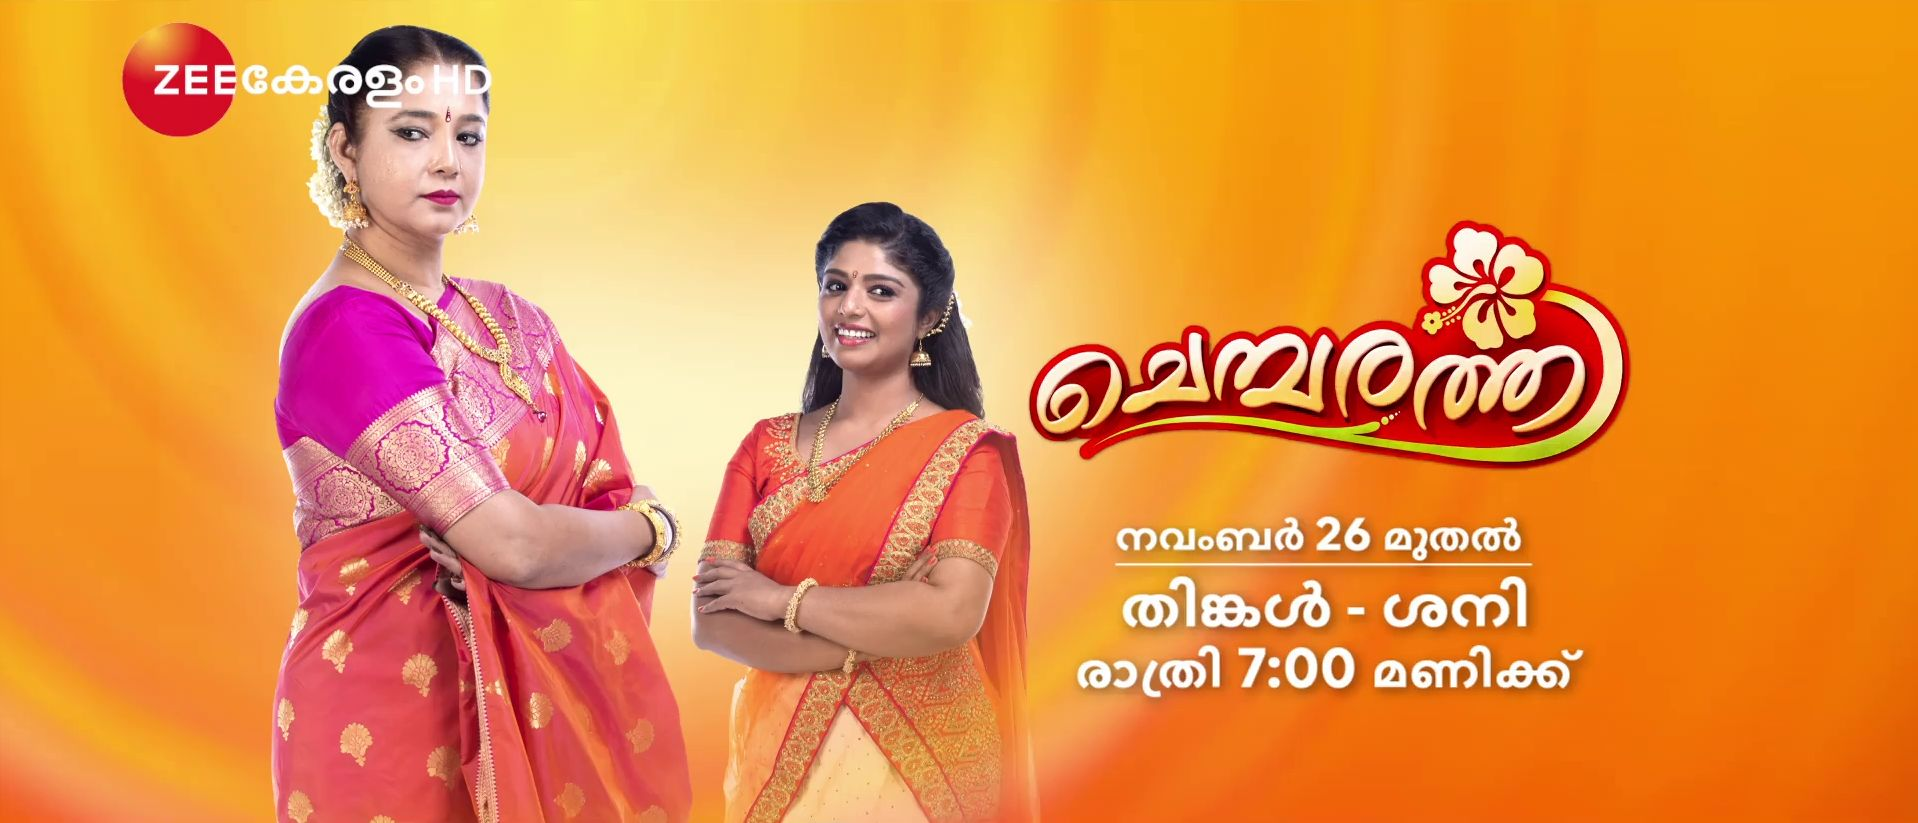 Chembarathi Zee Keralam Serial From 26 November At 7 00 P M